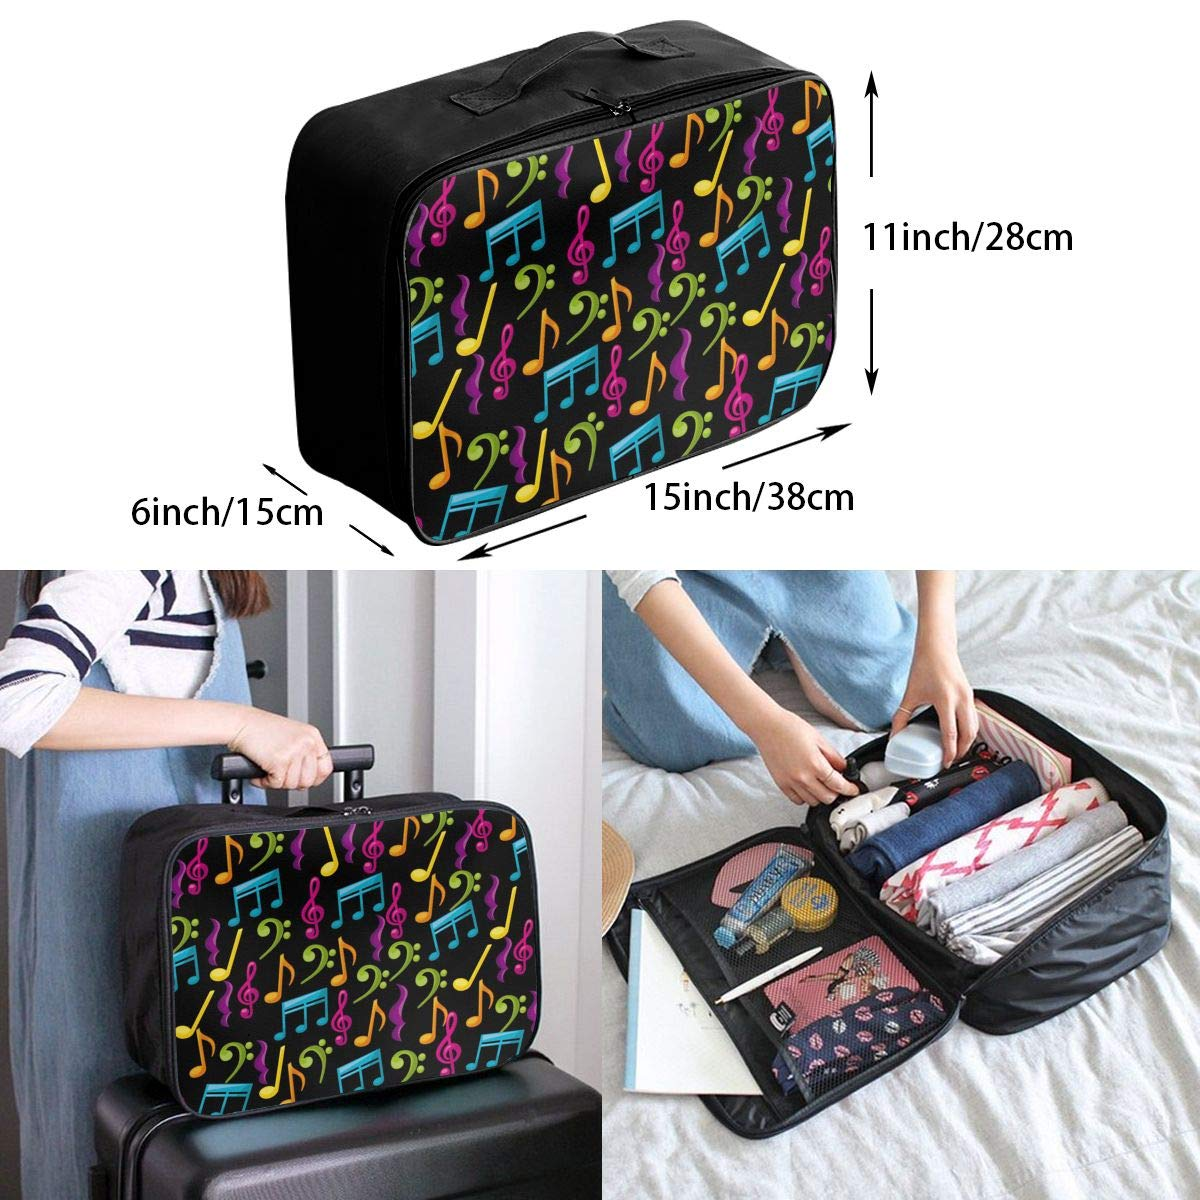 Travel Luggage Duffle Bag Lightweight Portable Handbag Music Notes Pattern Large Capacity Waterproof Foldable Storage Tote